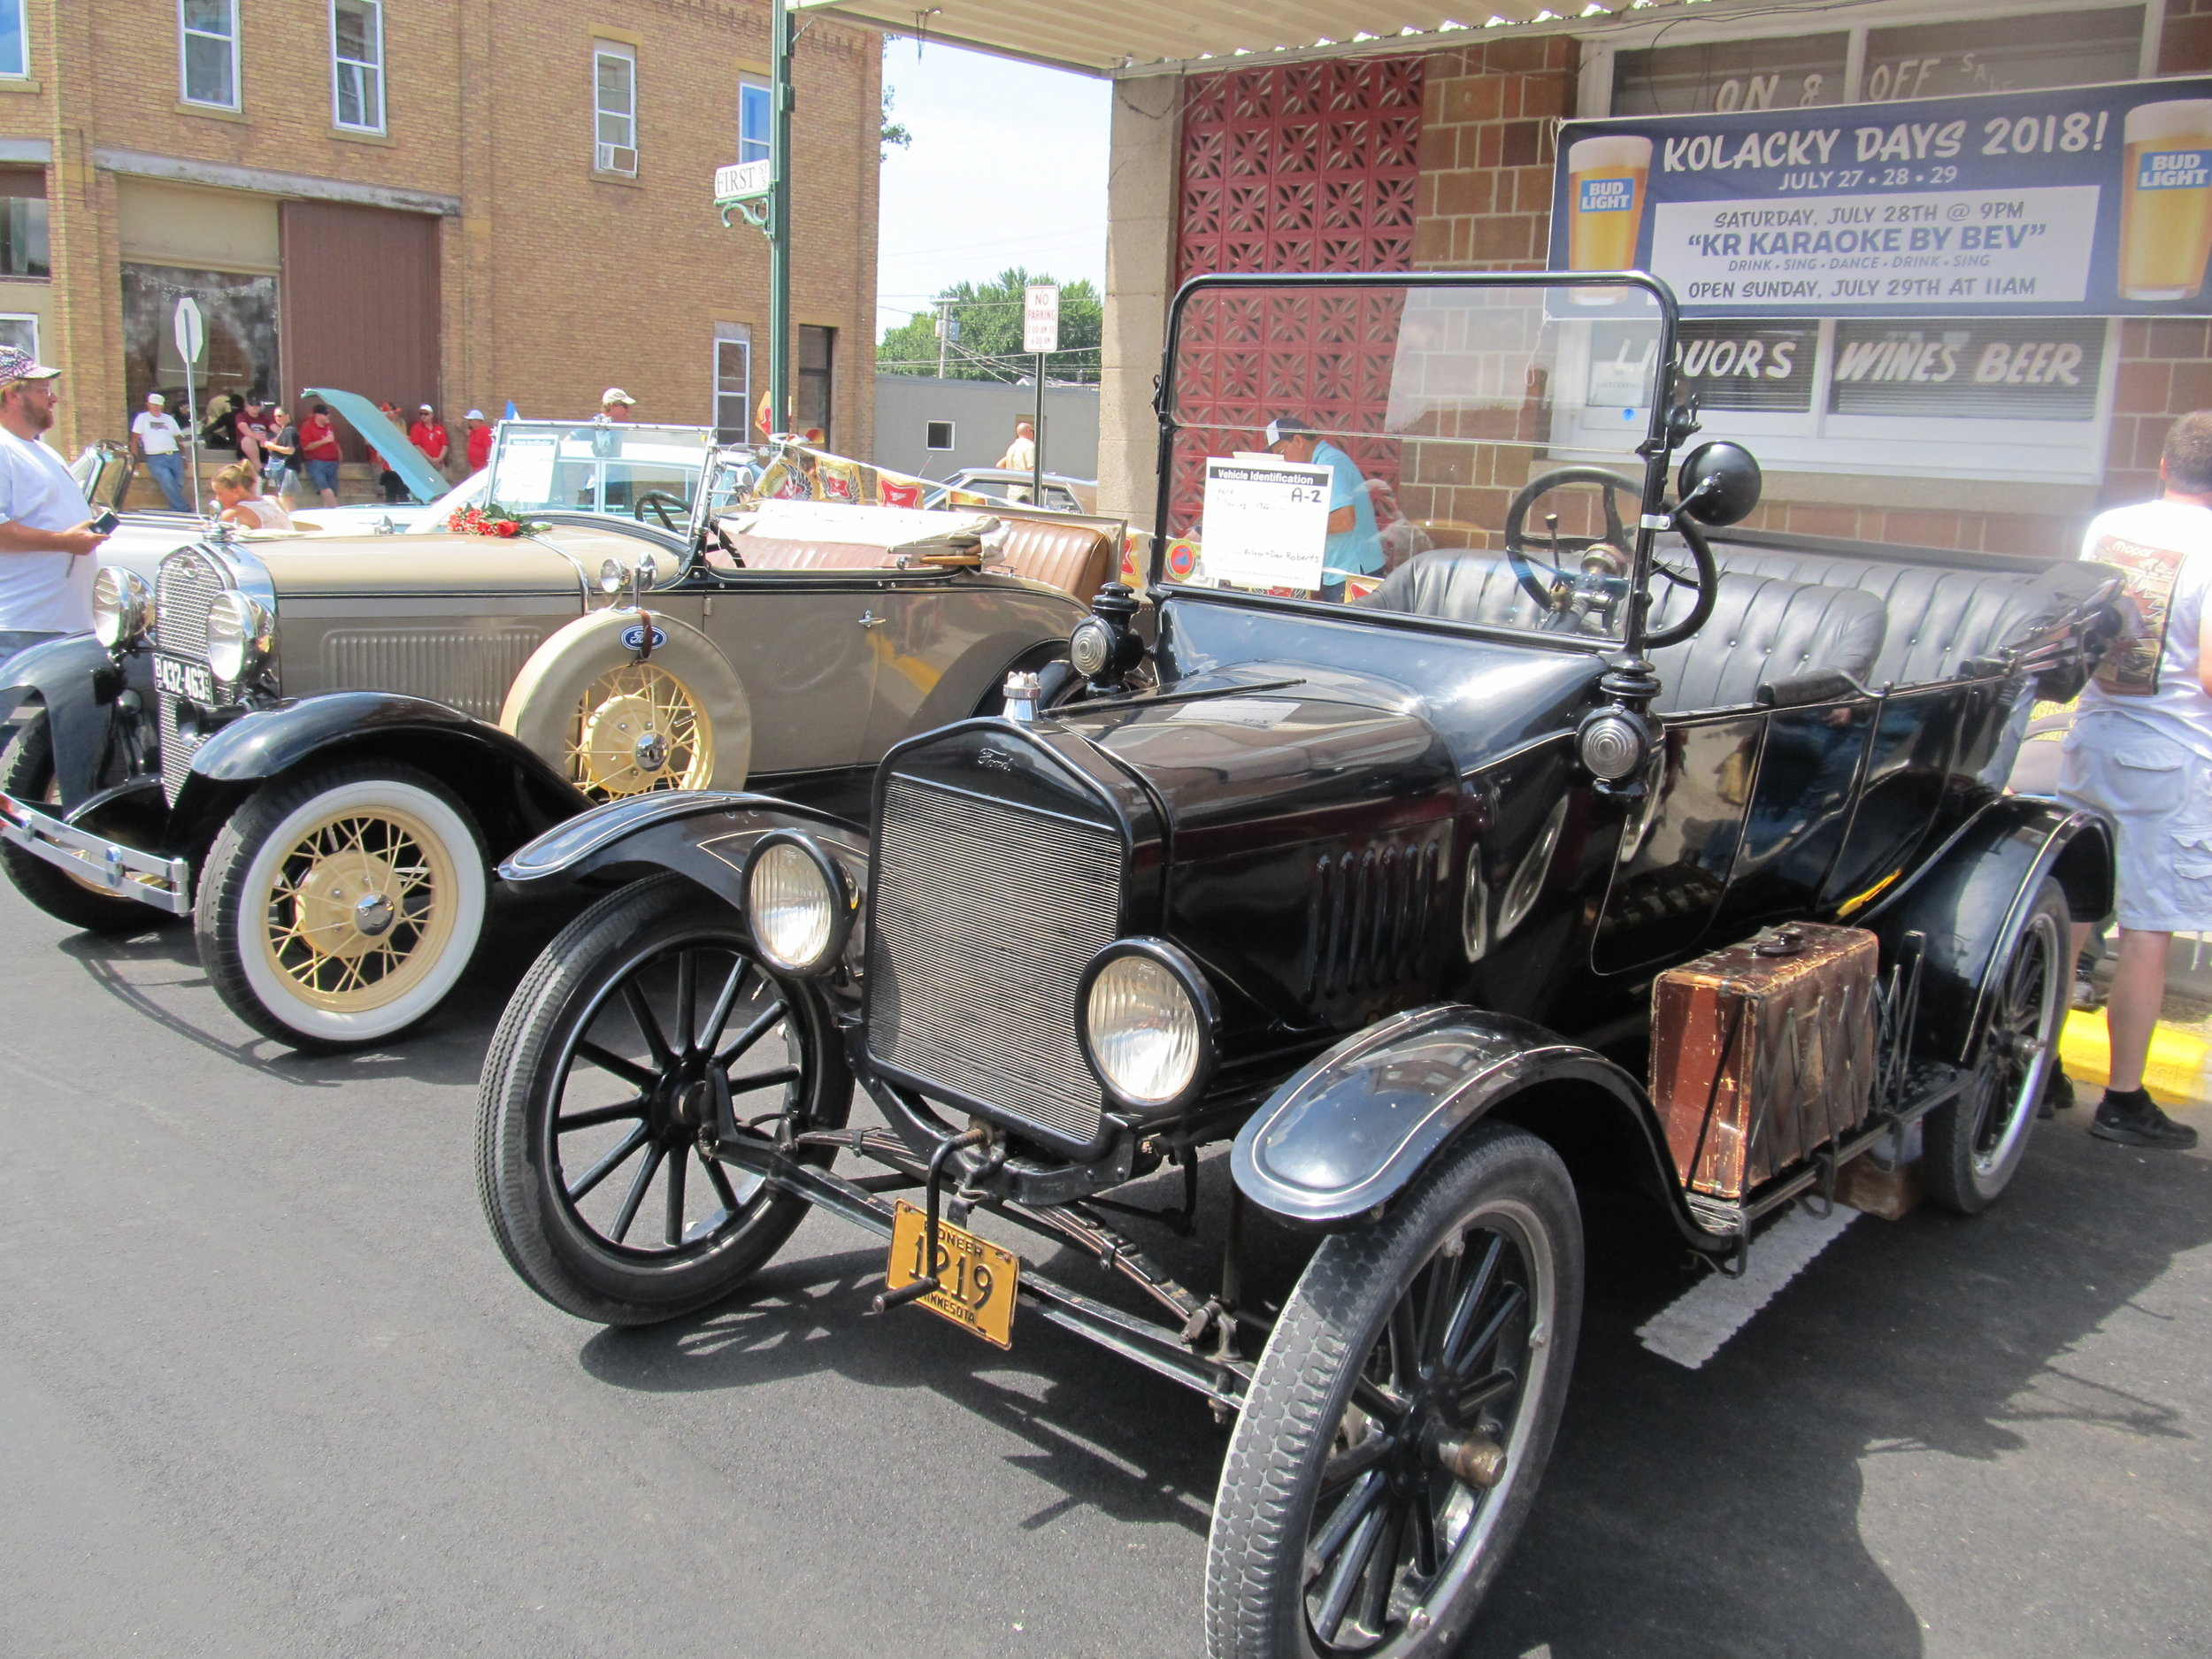 AE - JUDD - Kolacky days car show- antique cars.jpg